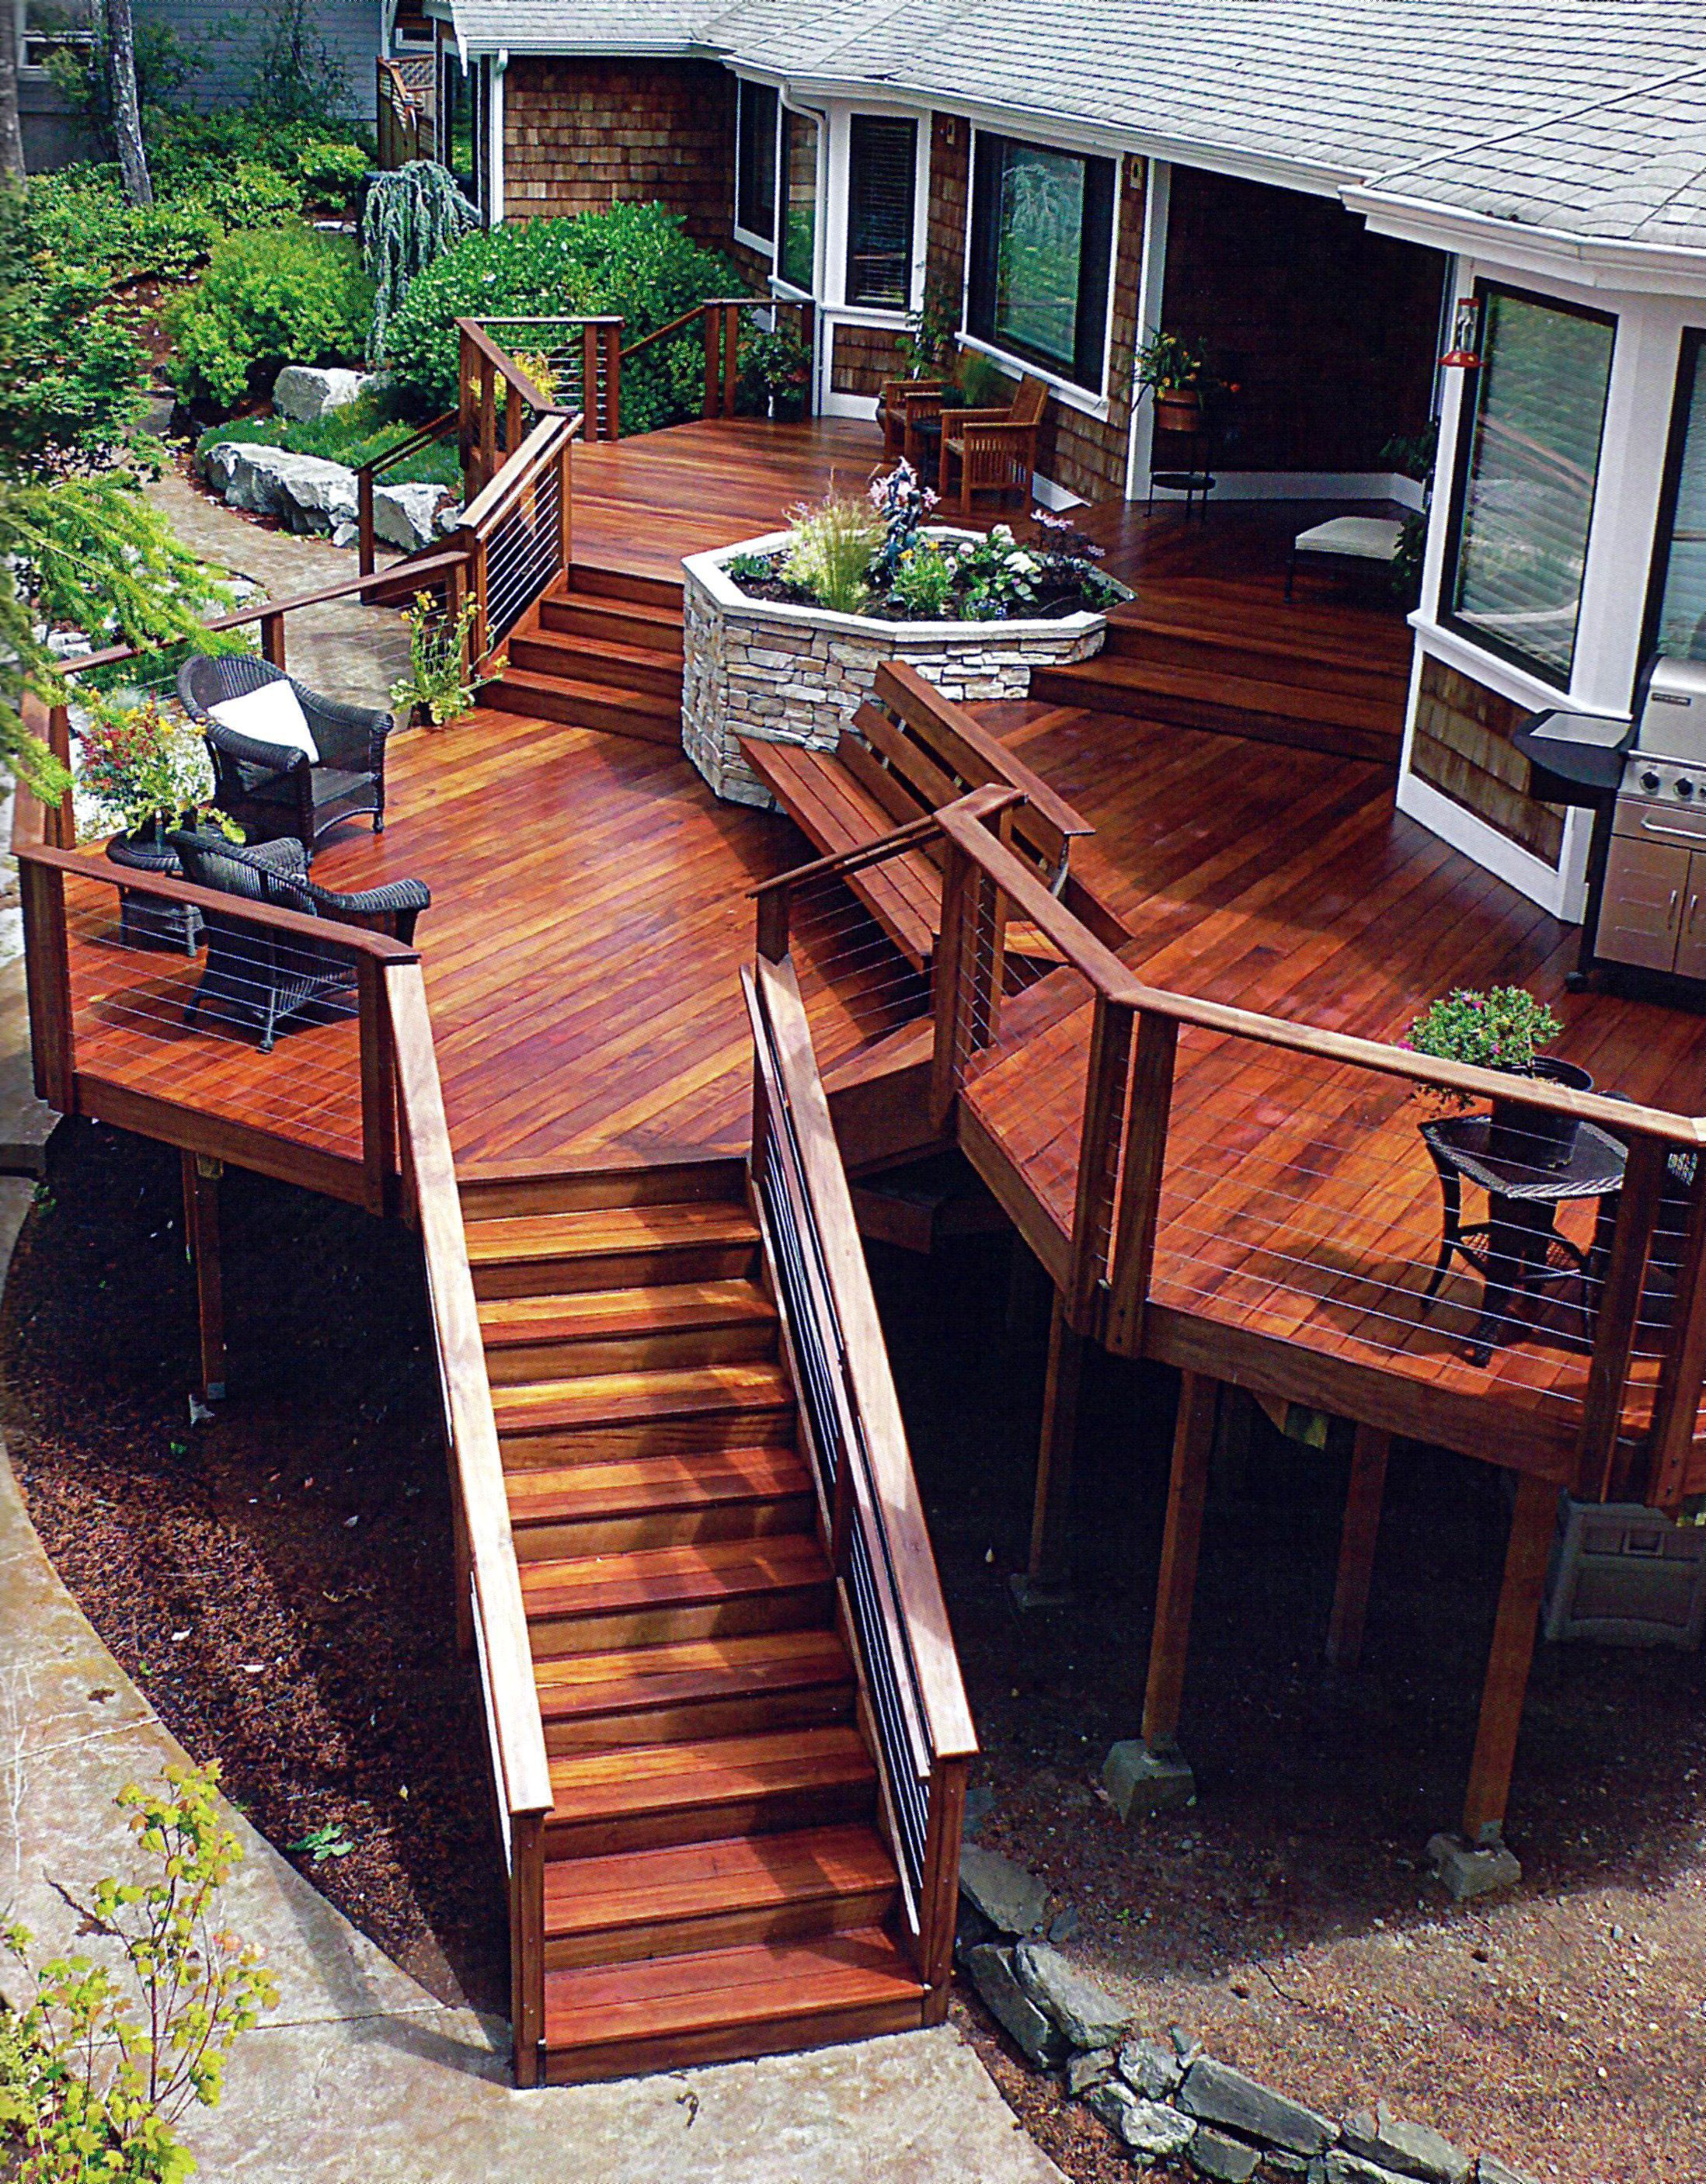 Multi Level Deck with a Stone Planter as